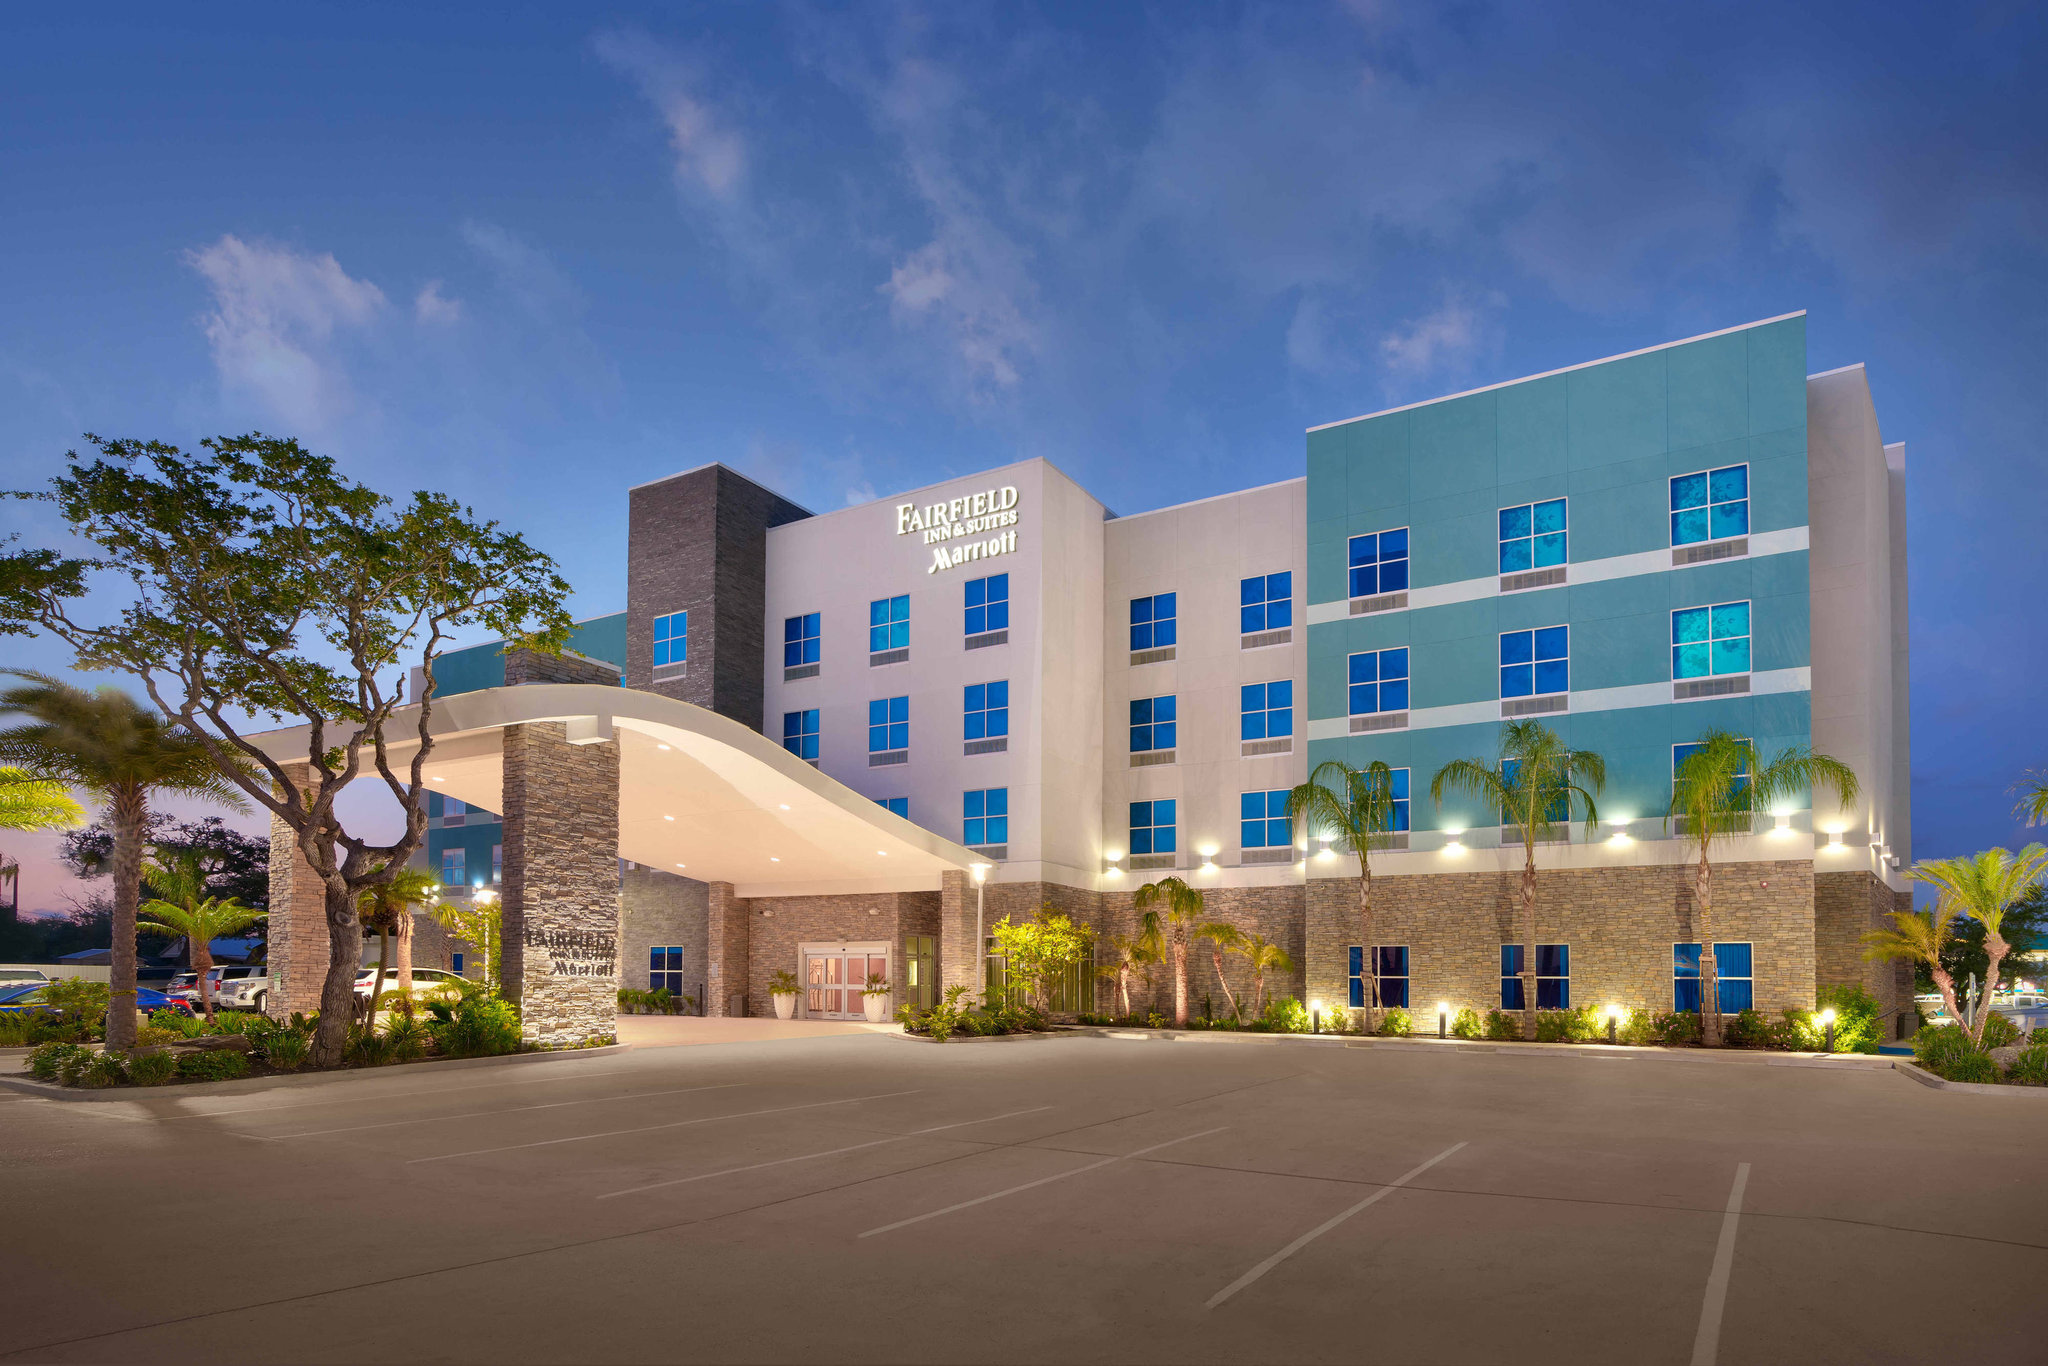 Fairfield Inn and Suites by Marriott Rockport